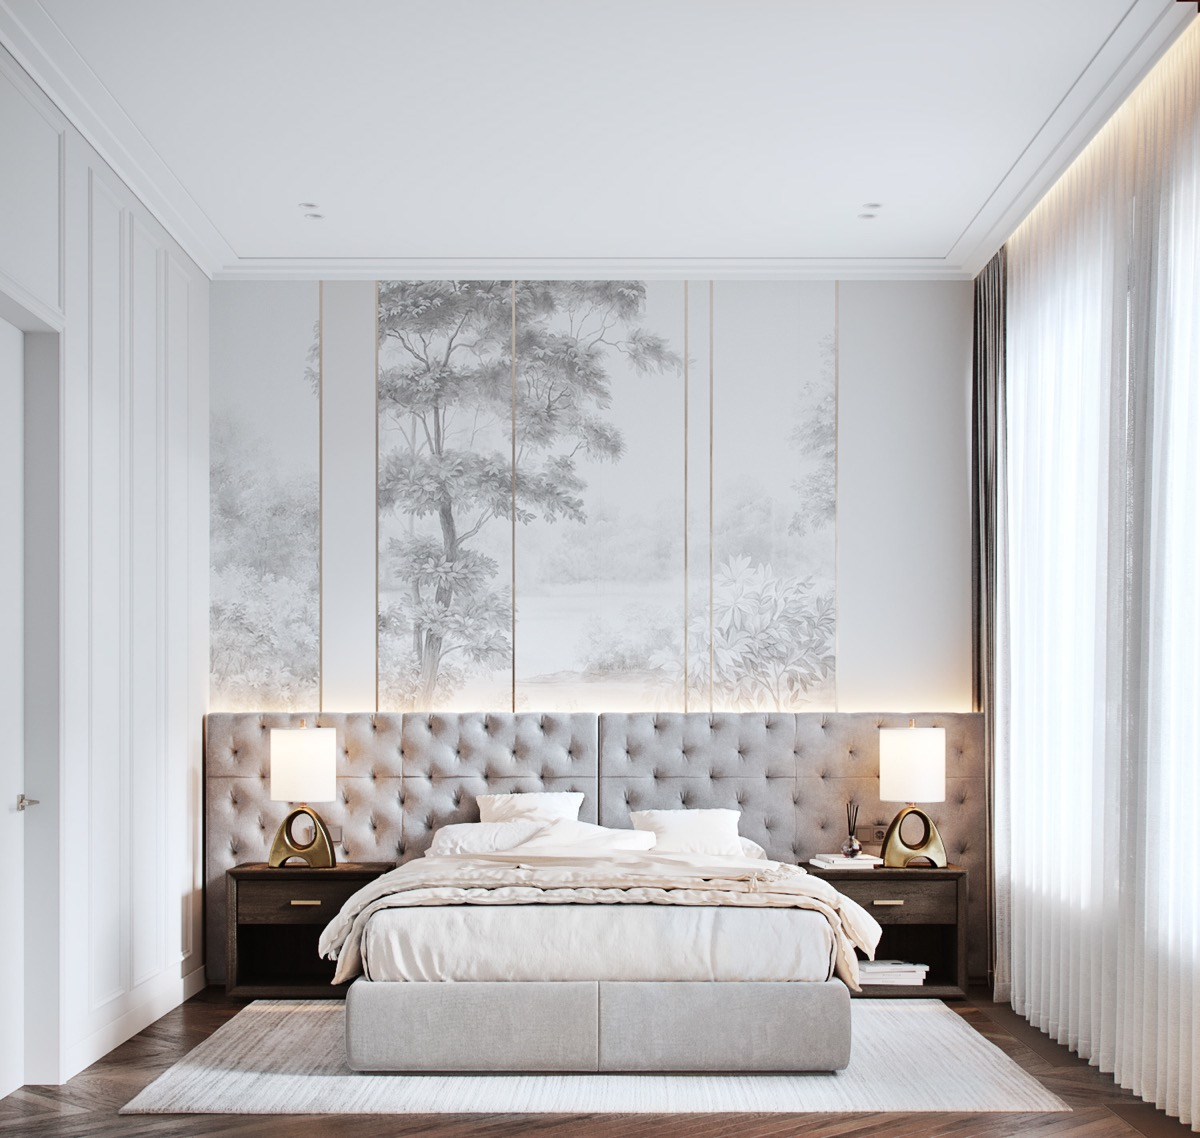 transitional-bedroom-design-tips-and-ideas-for-light-colors-and-subtle-texture